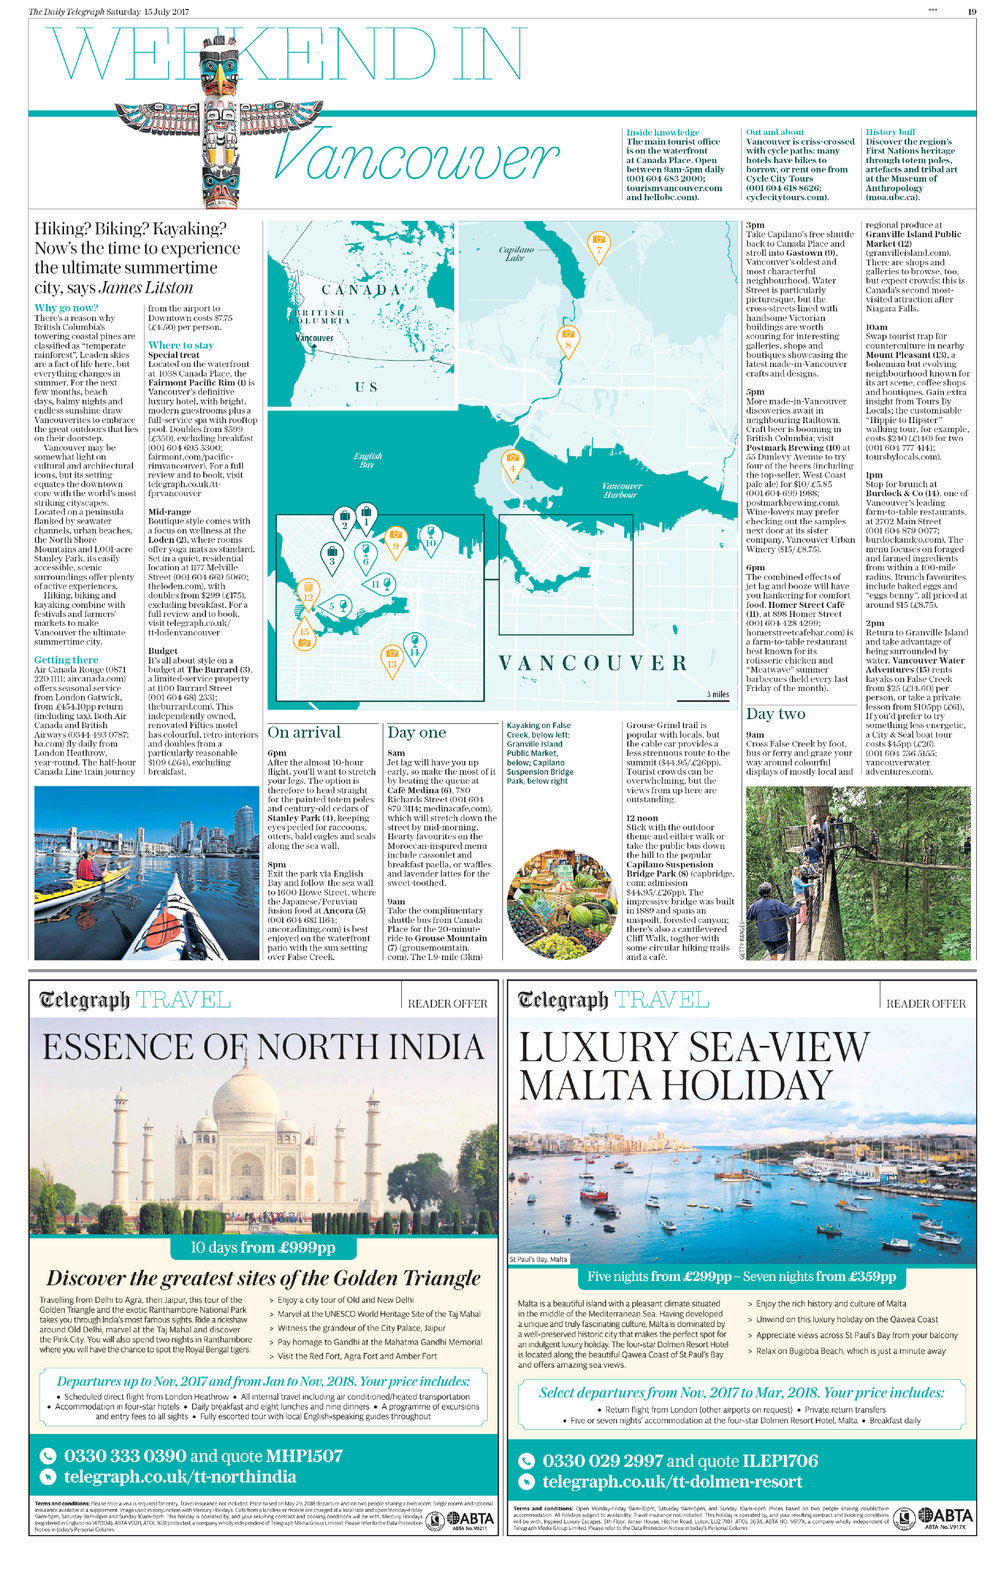 Loden Hotel - The Daily Telegraph